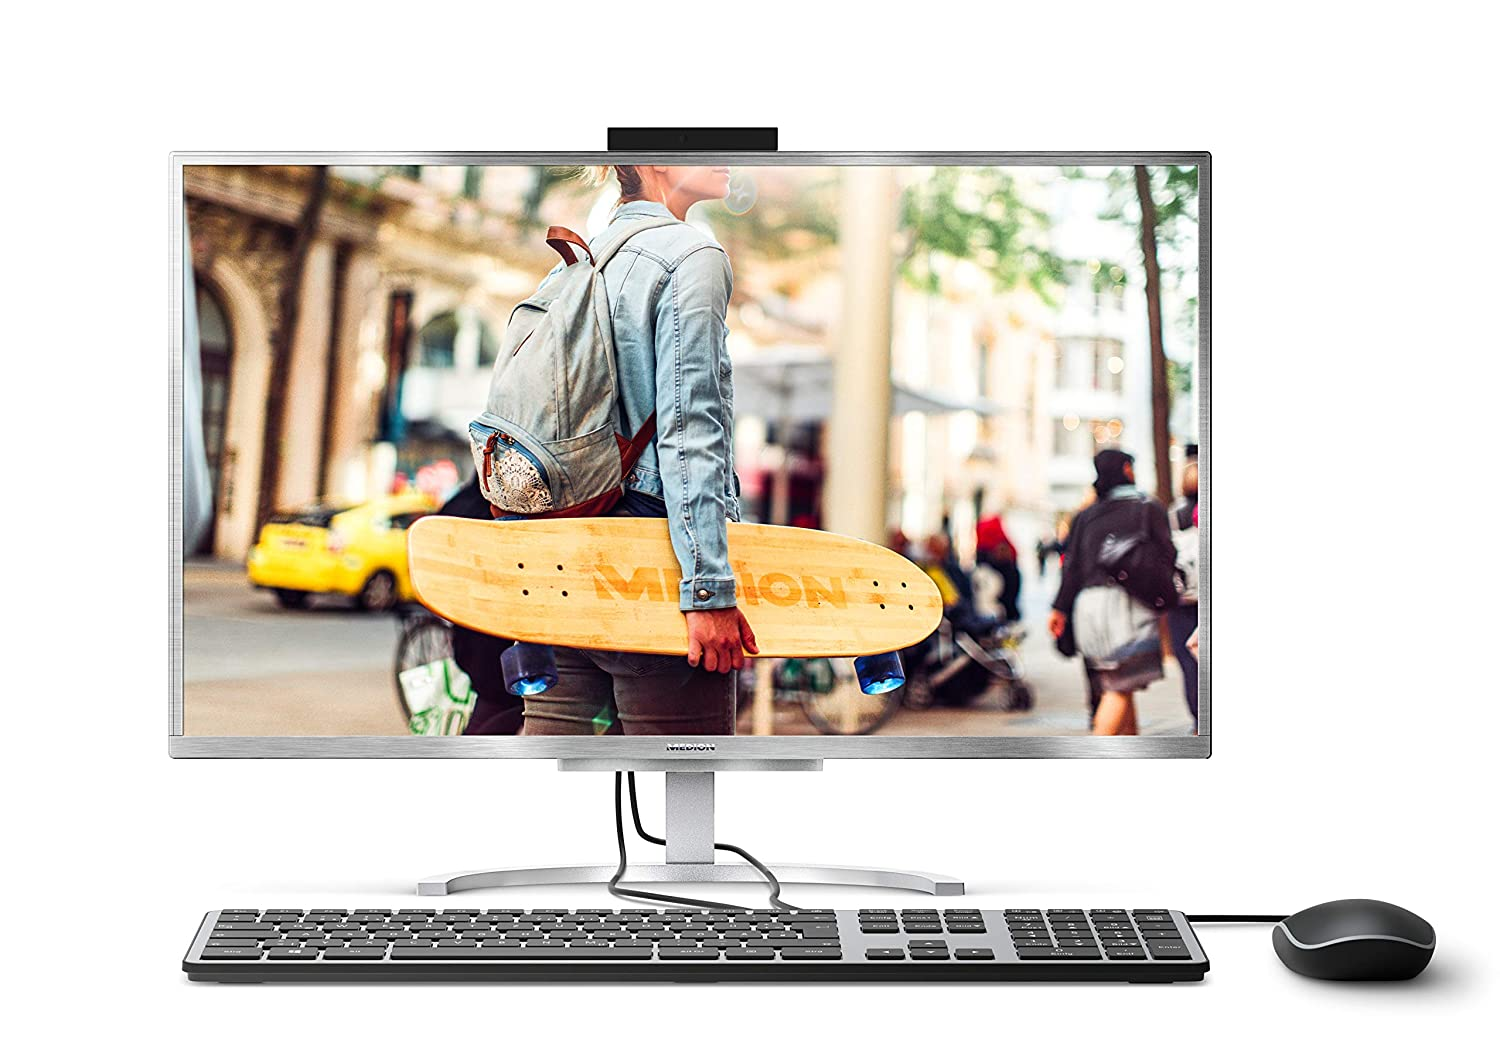 TALLA 8GB RAM | 1TB HDD. Medion Akoya E23401 All-in-One - Ordenador sobremesa de 23.8